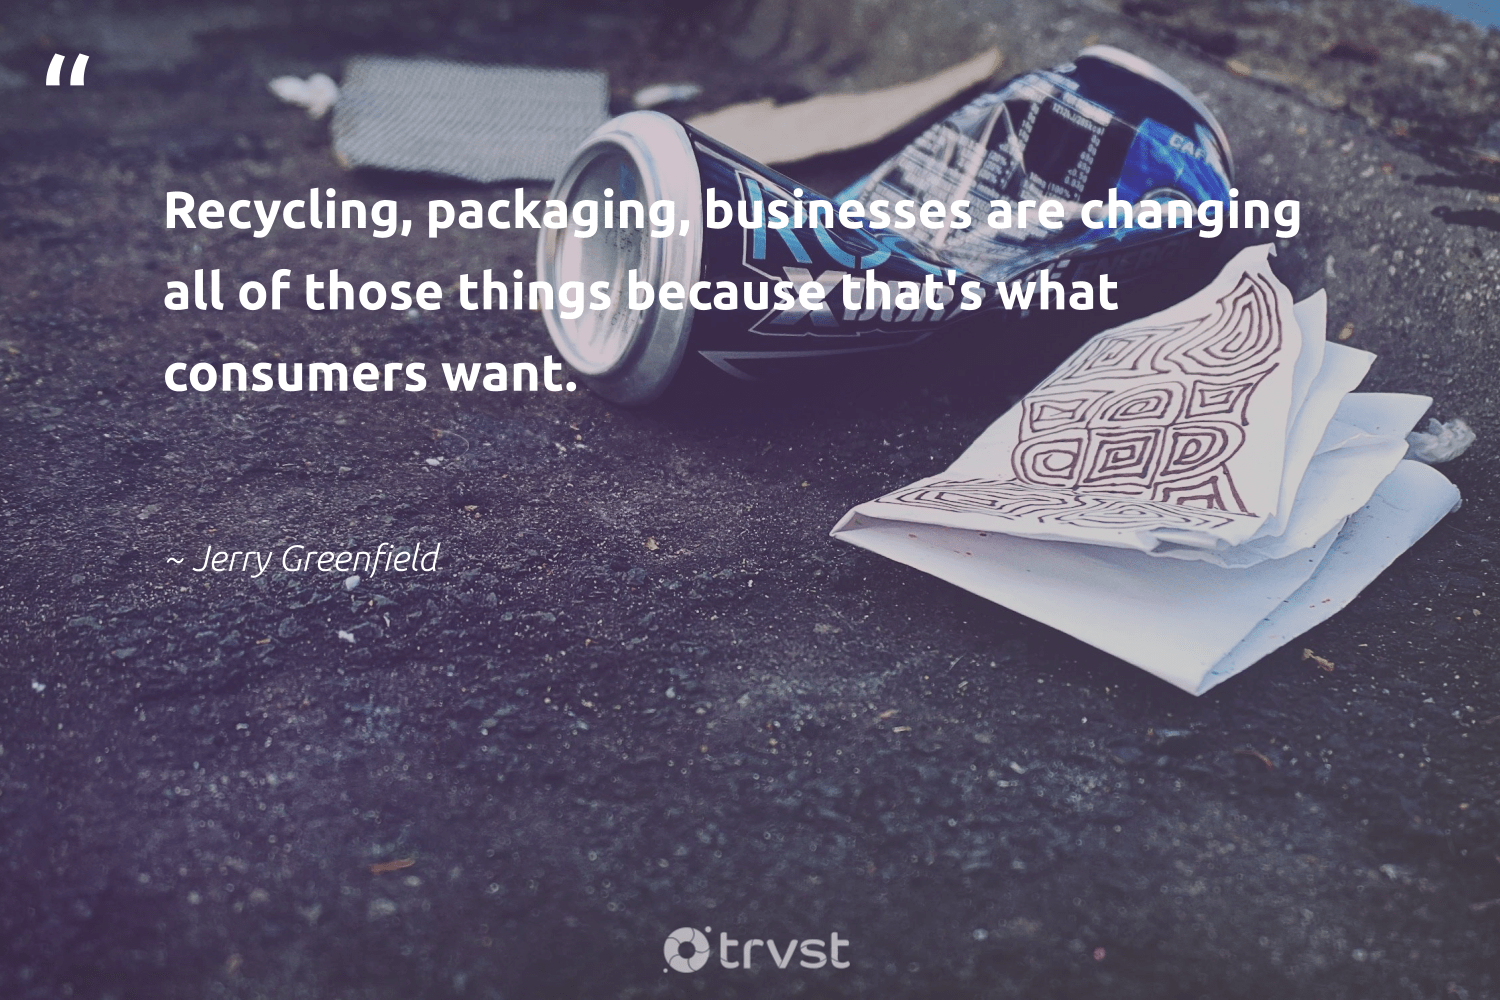 """""""Recycling, packaging, businesses are changing all of those things because that's what consumers want.""""  - Jerry Greenfield #trvst #quotes #recycling #refuse #environmentallyfriendly #earthdayeveryday #changetheworld #reuse #ecoconscious #wecandobetter #gogreen #reducereuserecycle"""